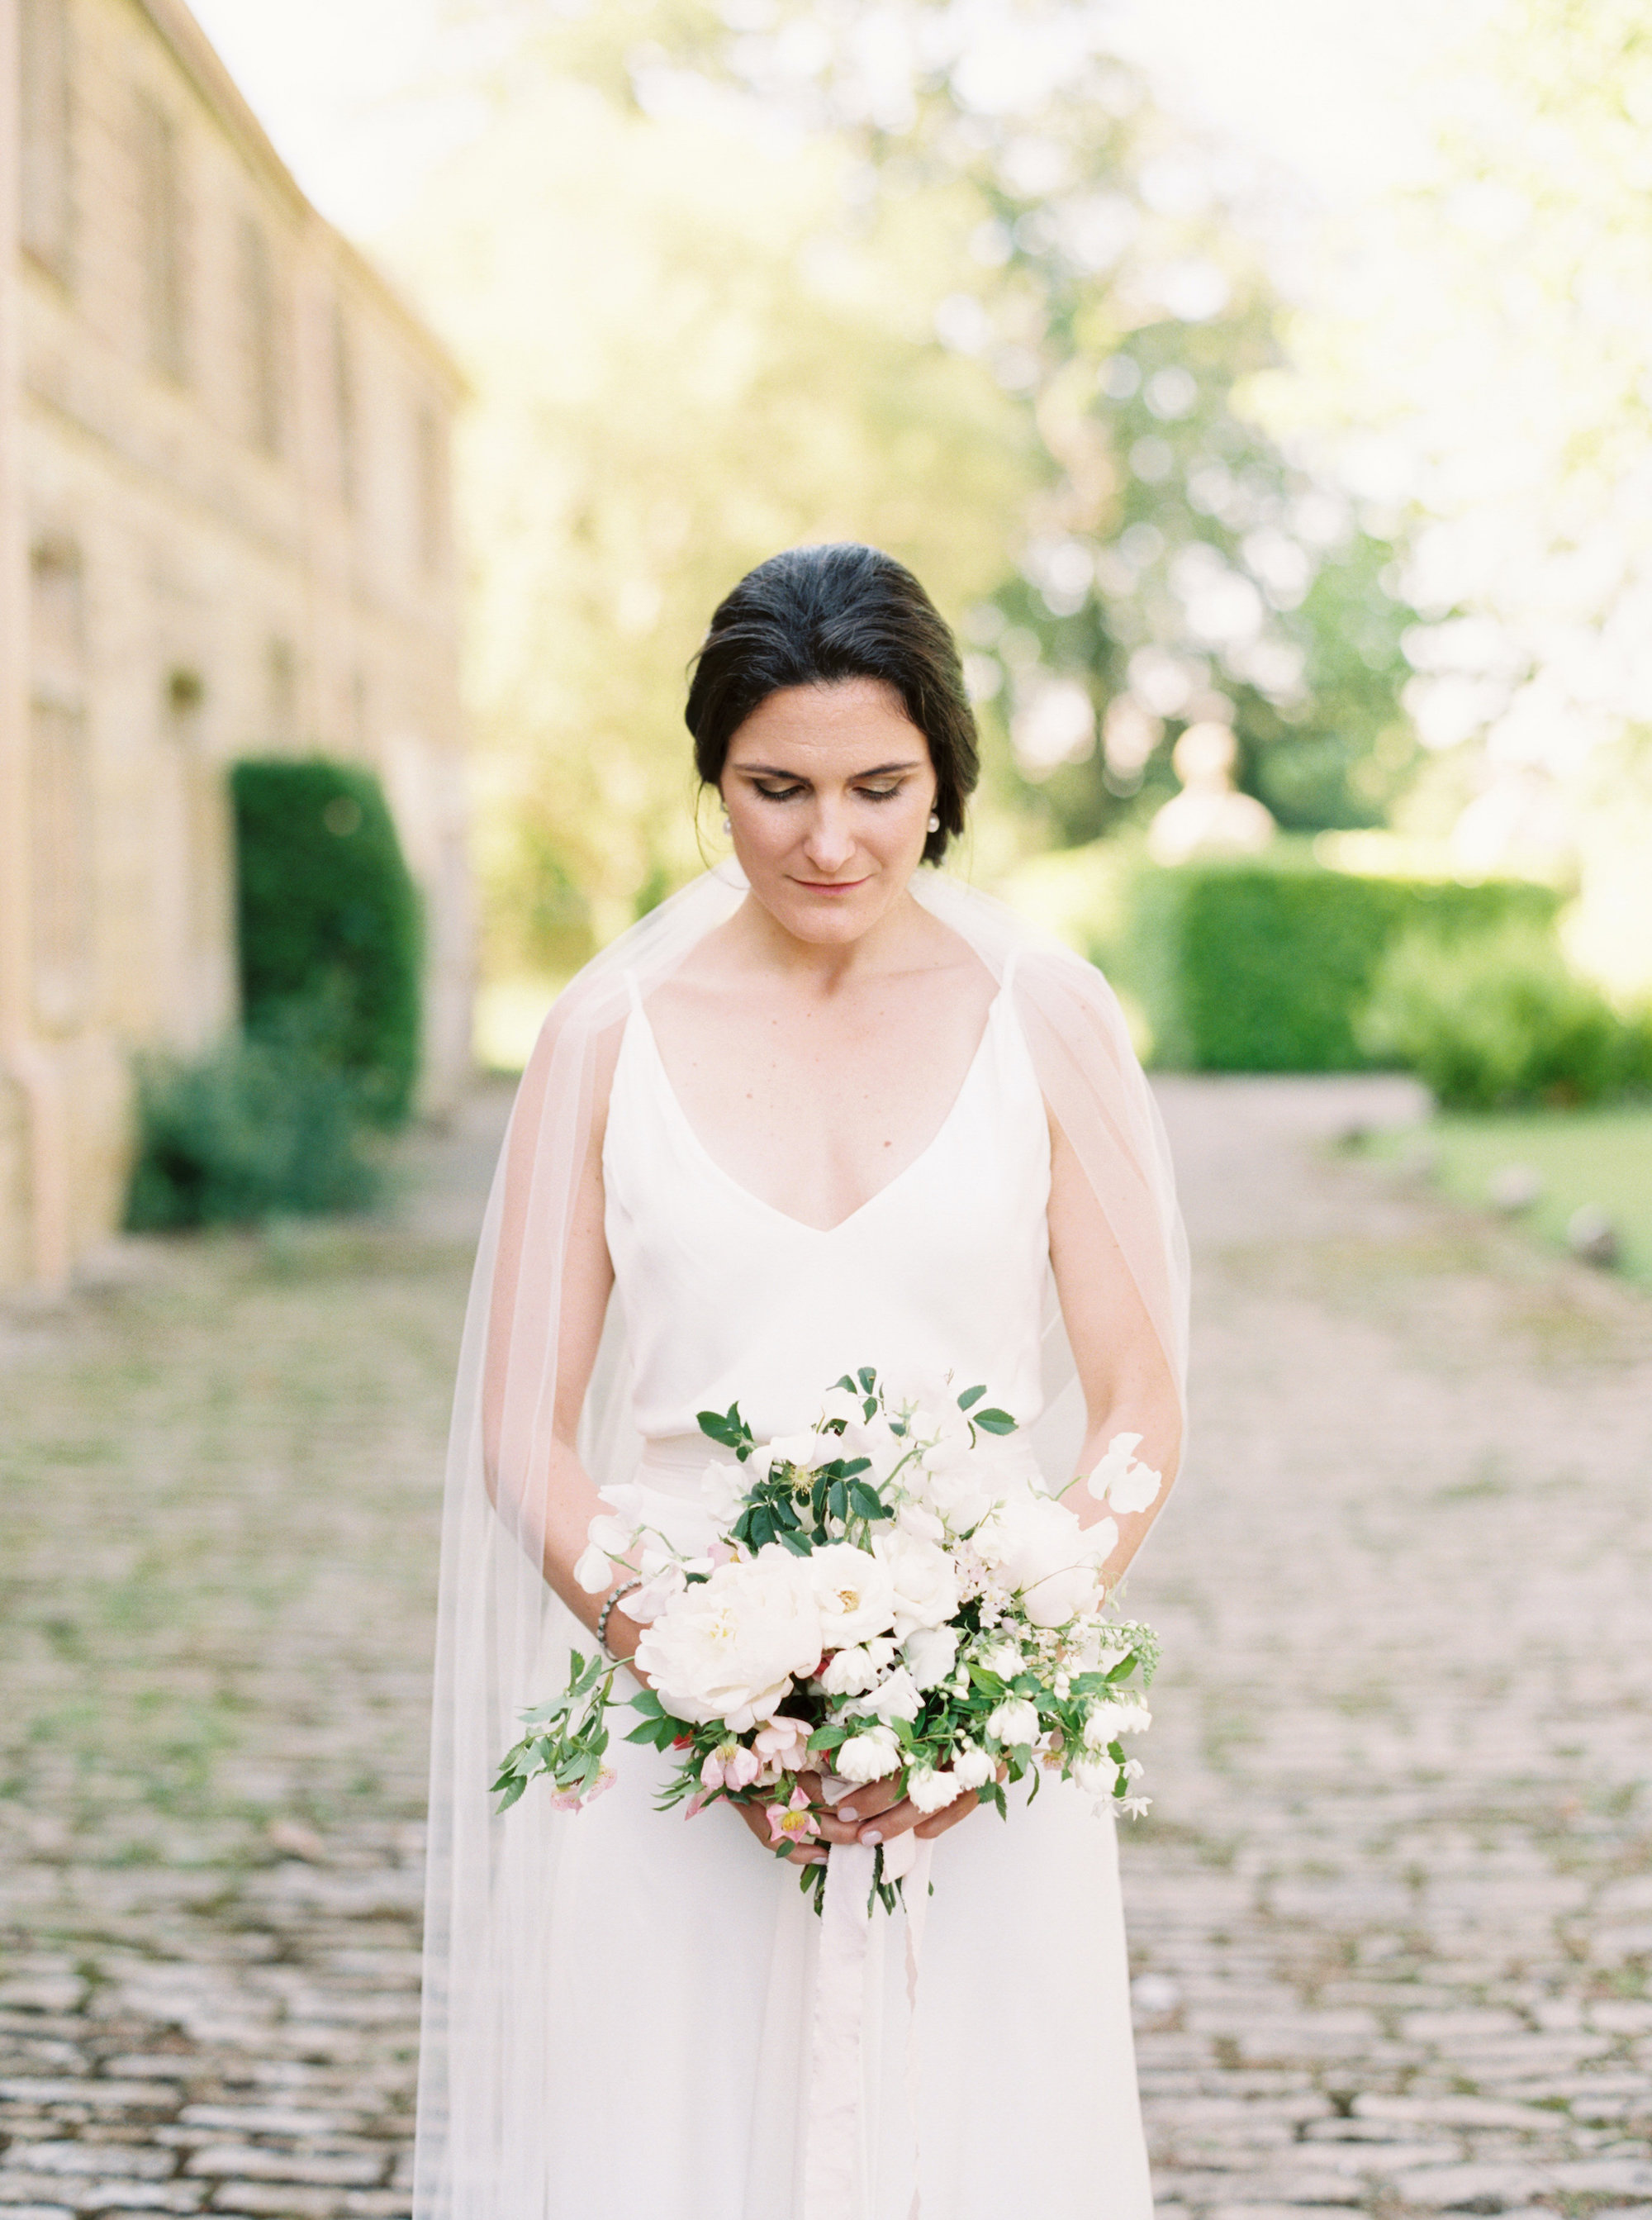 Luxury Wedding Planner UK | Jennifer & Timothy's English Country Manor Wedding | Soft Pink Pale Blue White and Silver Toned Green Neutral Tones American Bride North Cadbury Court | Nicole Colwell Photography  0046.jpg